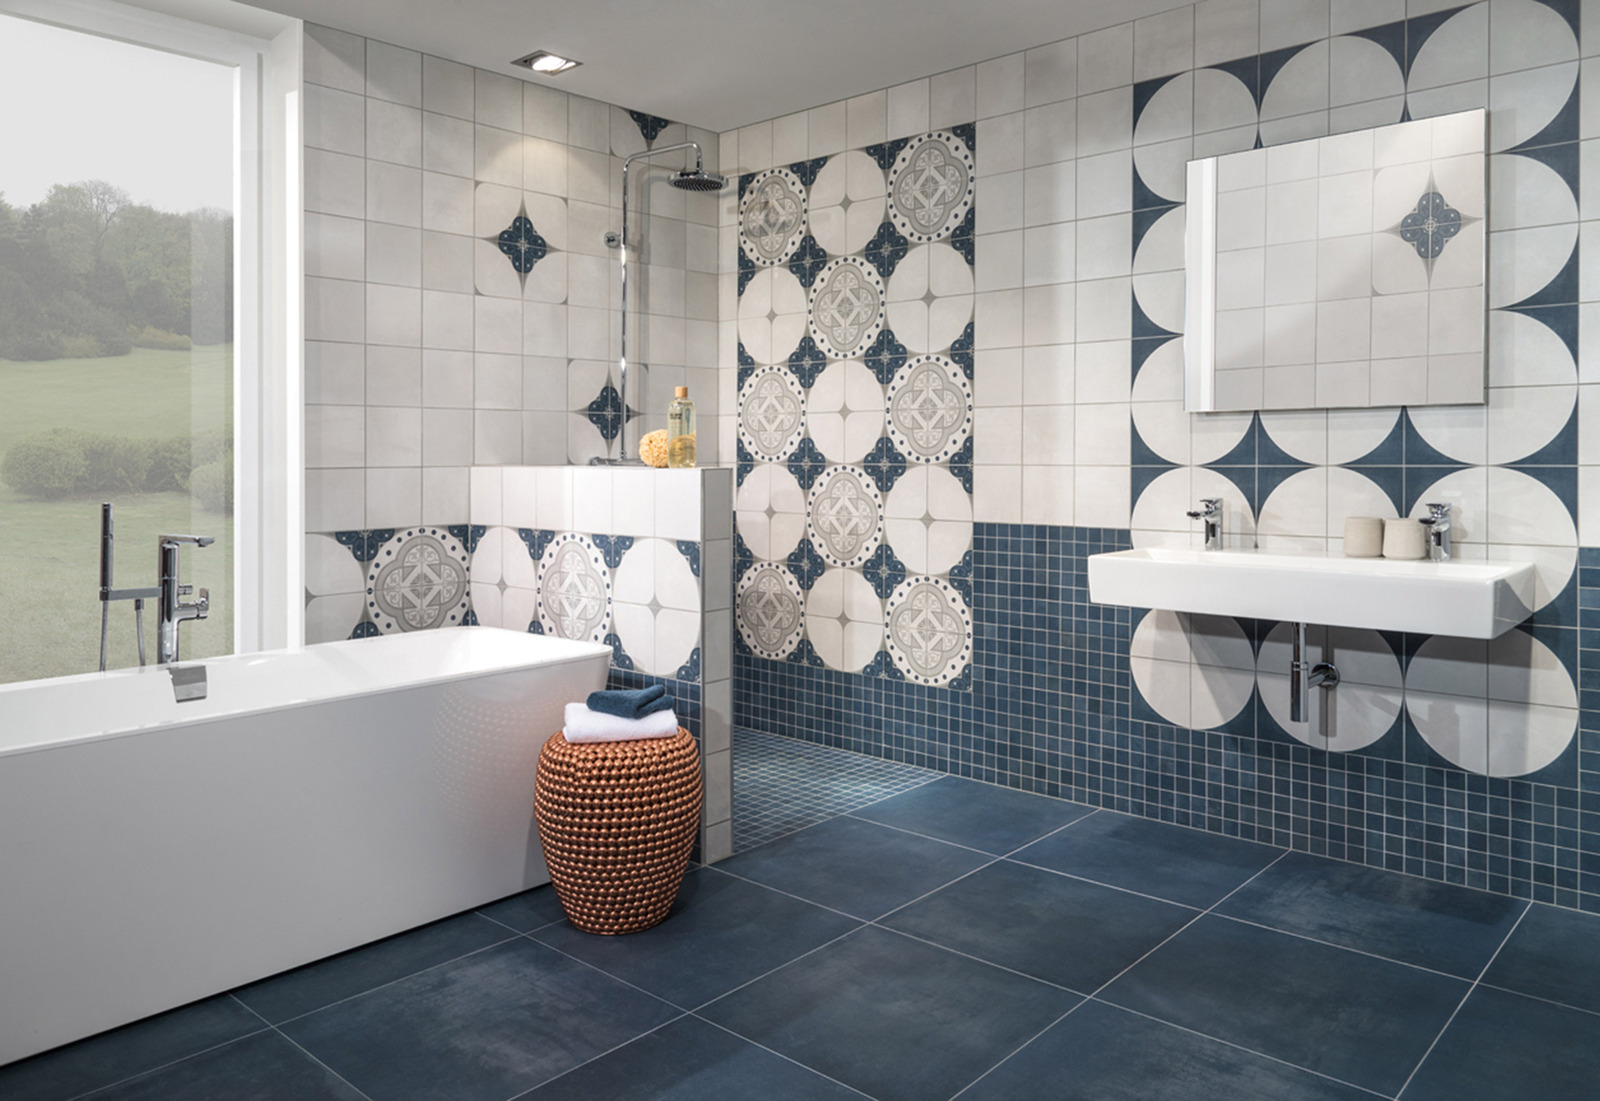 view in gallery porcelain stoneware tiles by villeroy boch 2 thumb 630xauto 53690 porcelain stoneware tiles by villeroy and